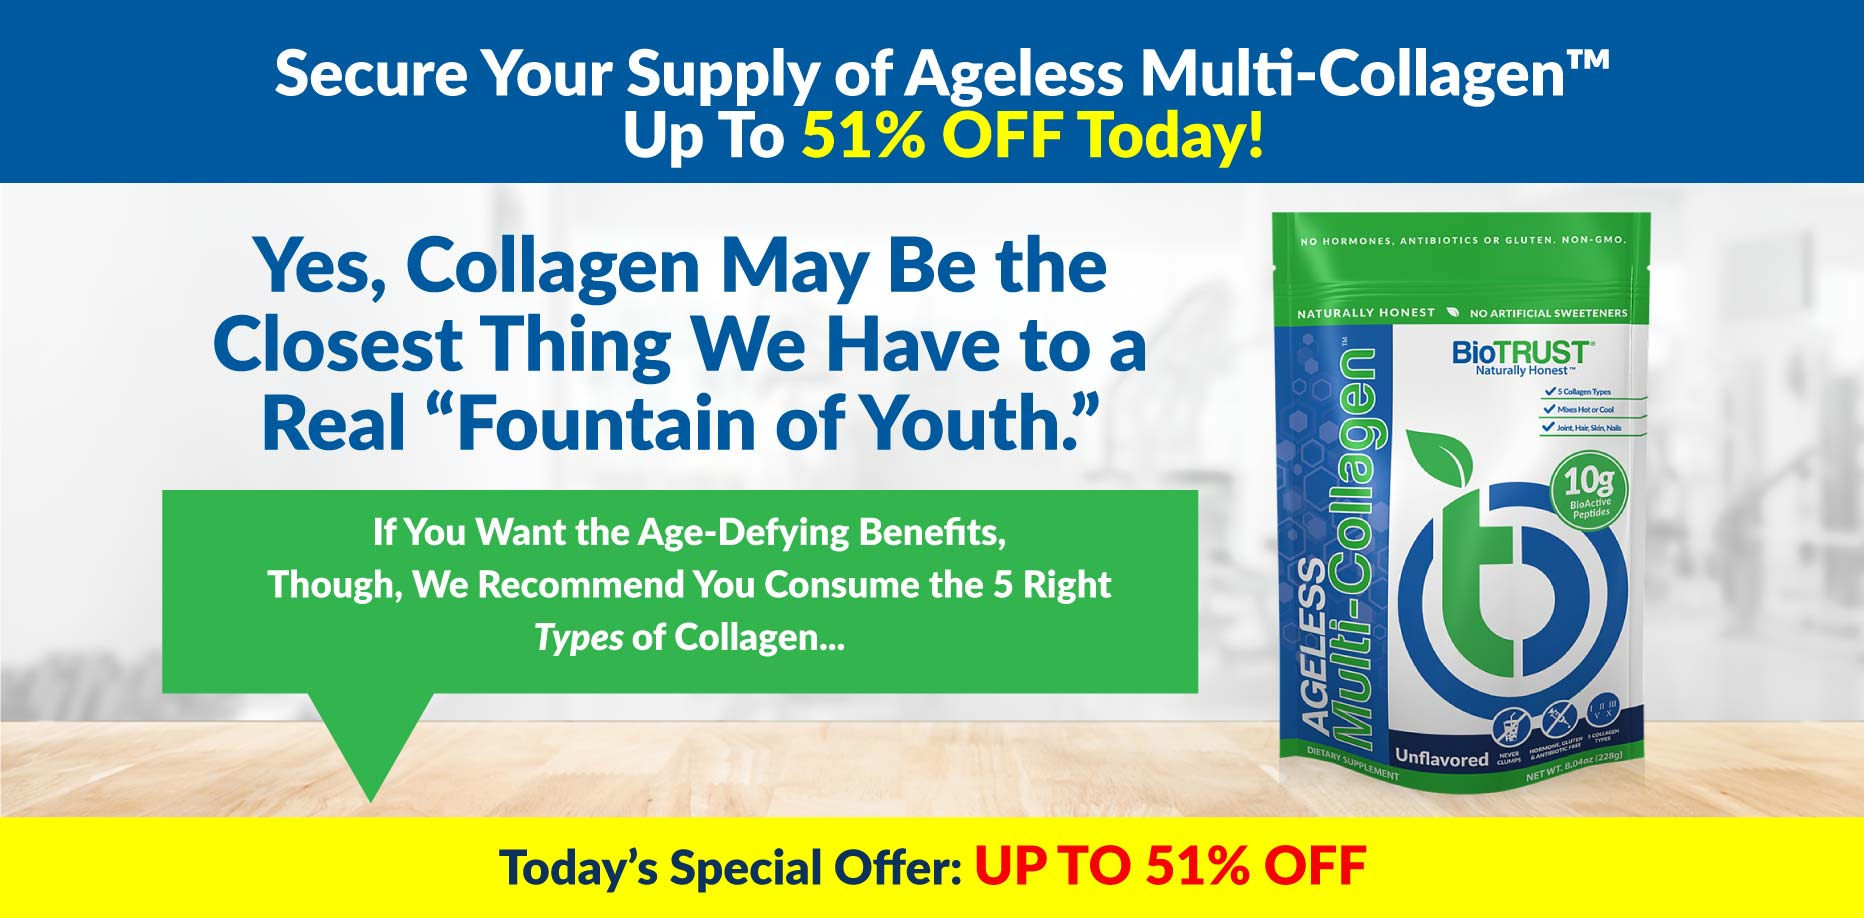 Secure Your Supply of Ageless Multi-Collagen